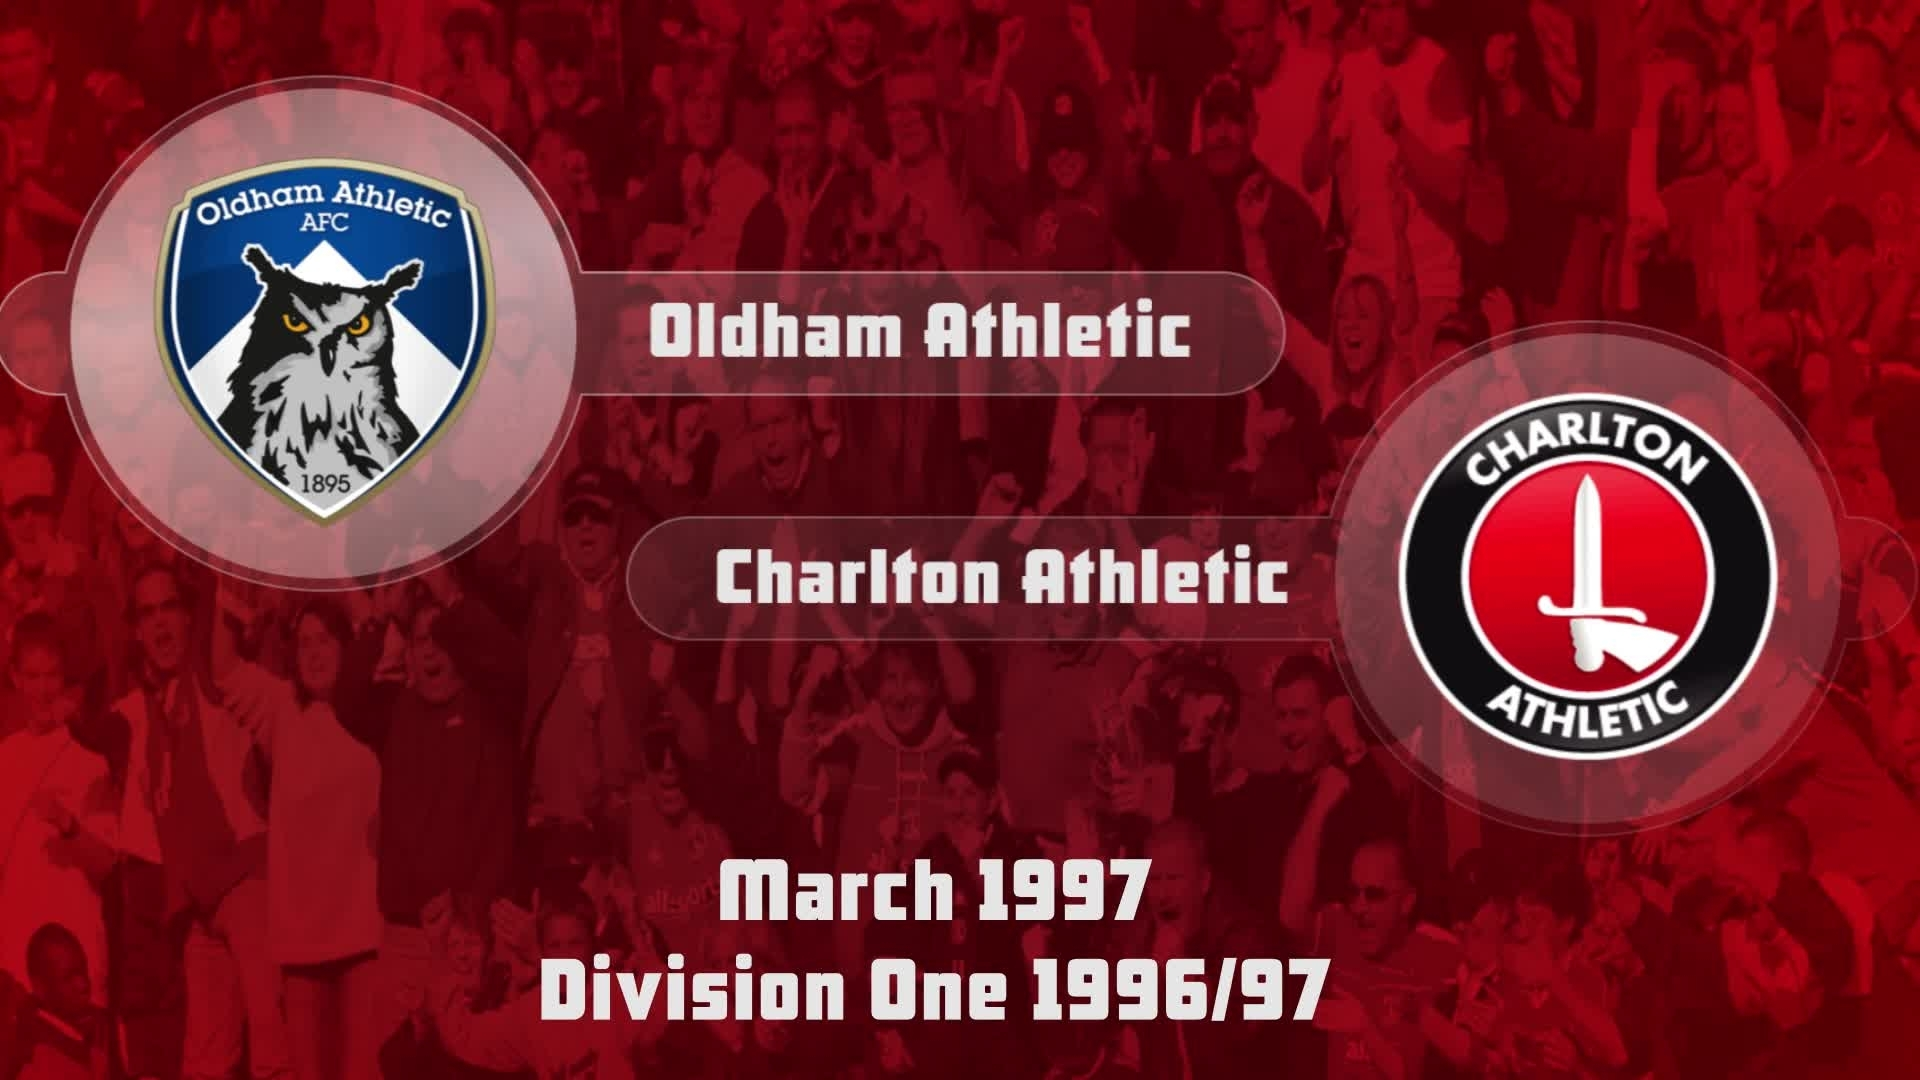 43 HIGHLIGHTS | Oldham 1 Charlton 1 (March 1997)